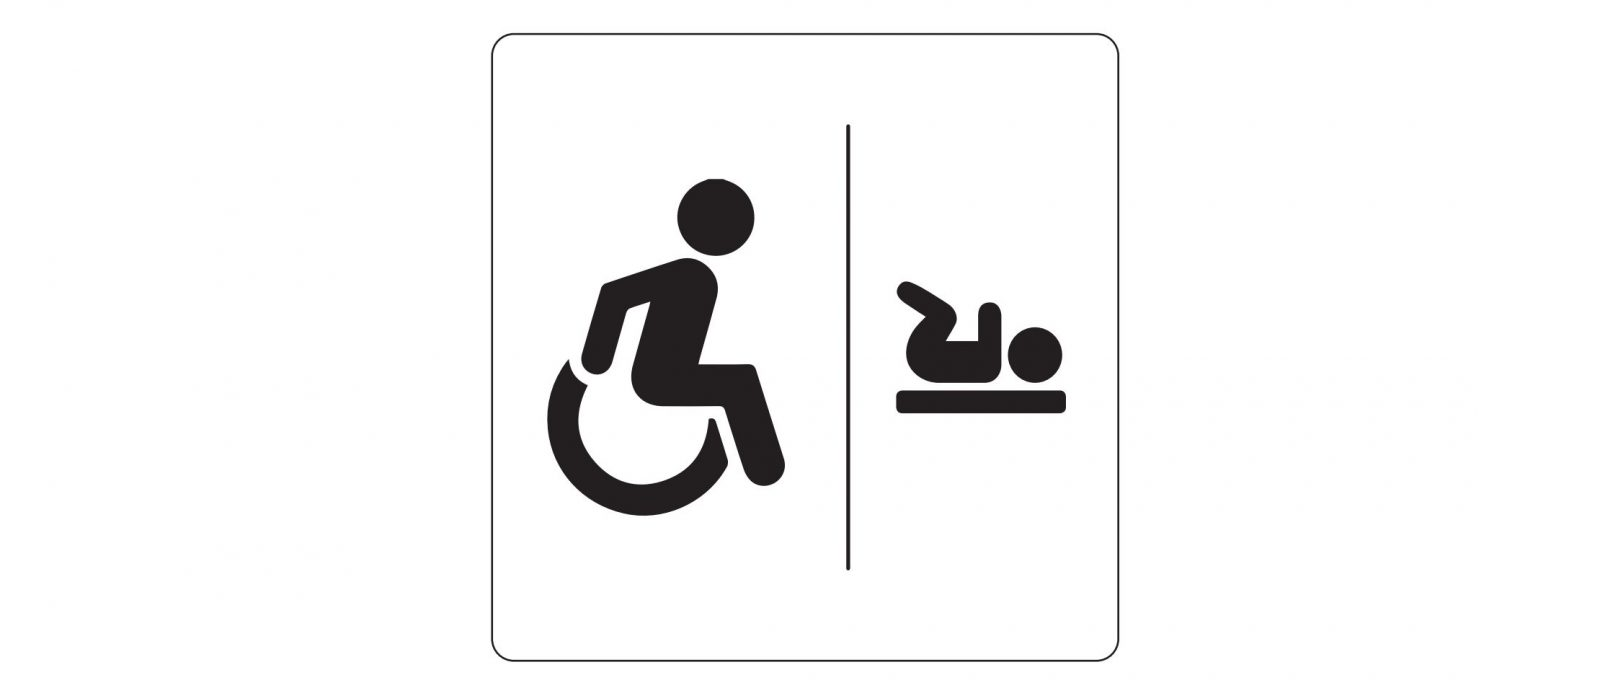 Cbs Has Got All Gender Toilets Signs What Do You Think